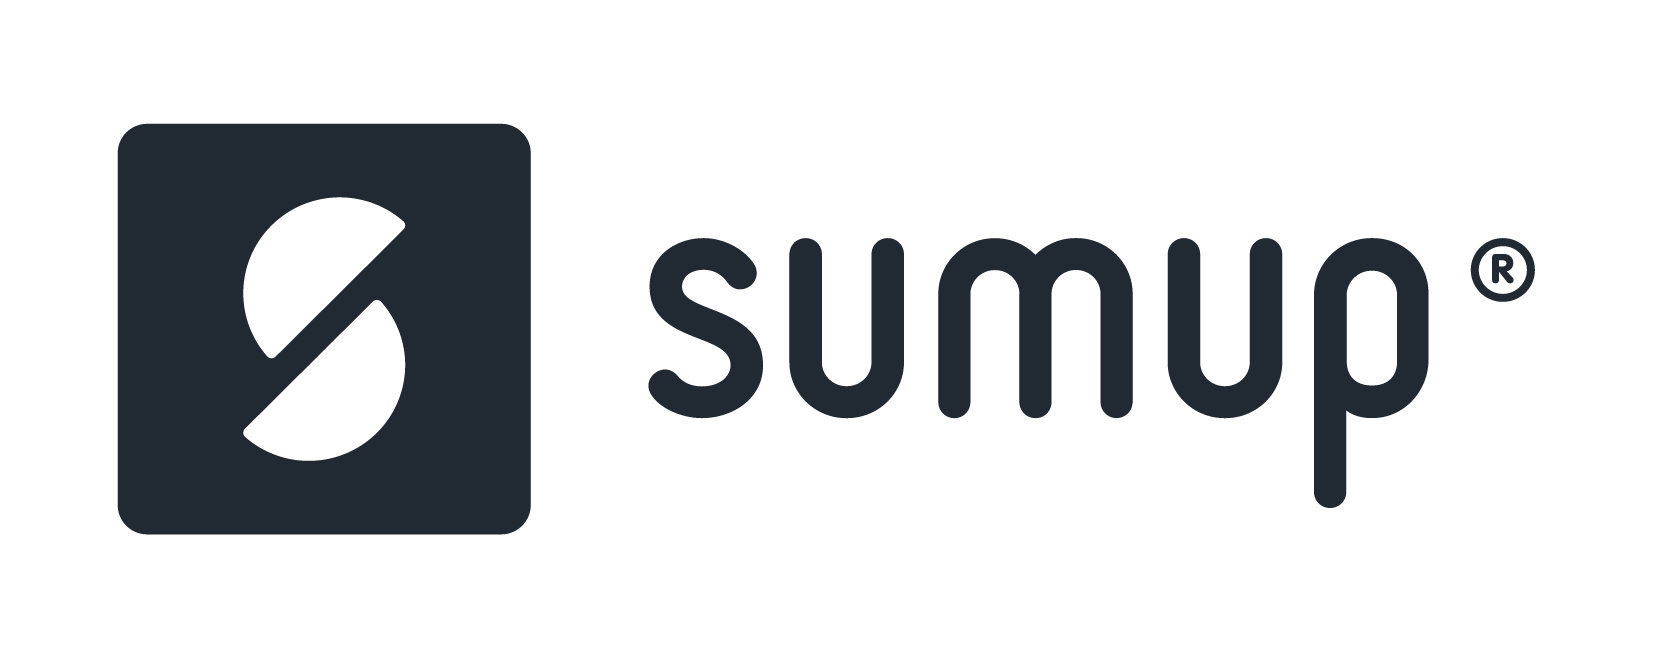 SumUp expands e-commerce product range to support businesses through COVID-19 lockdown and beyond